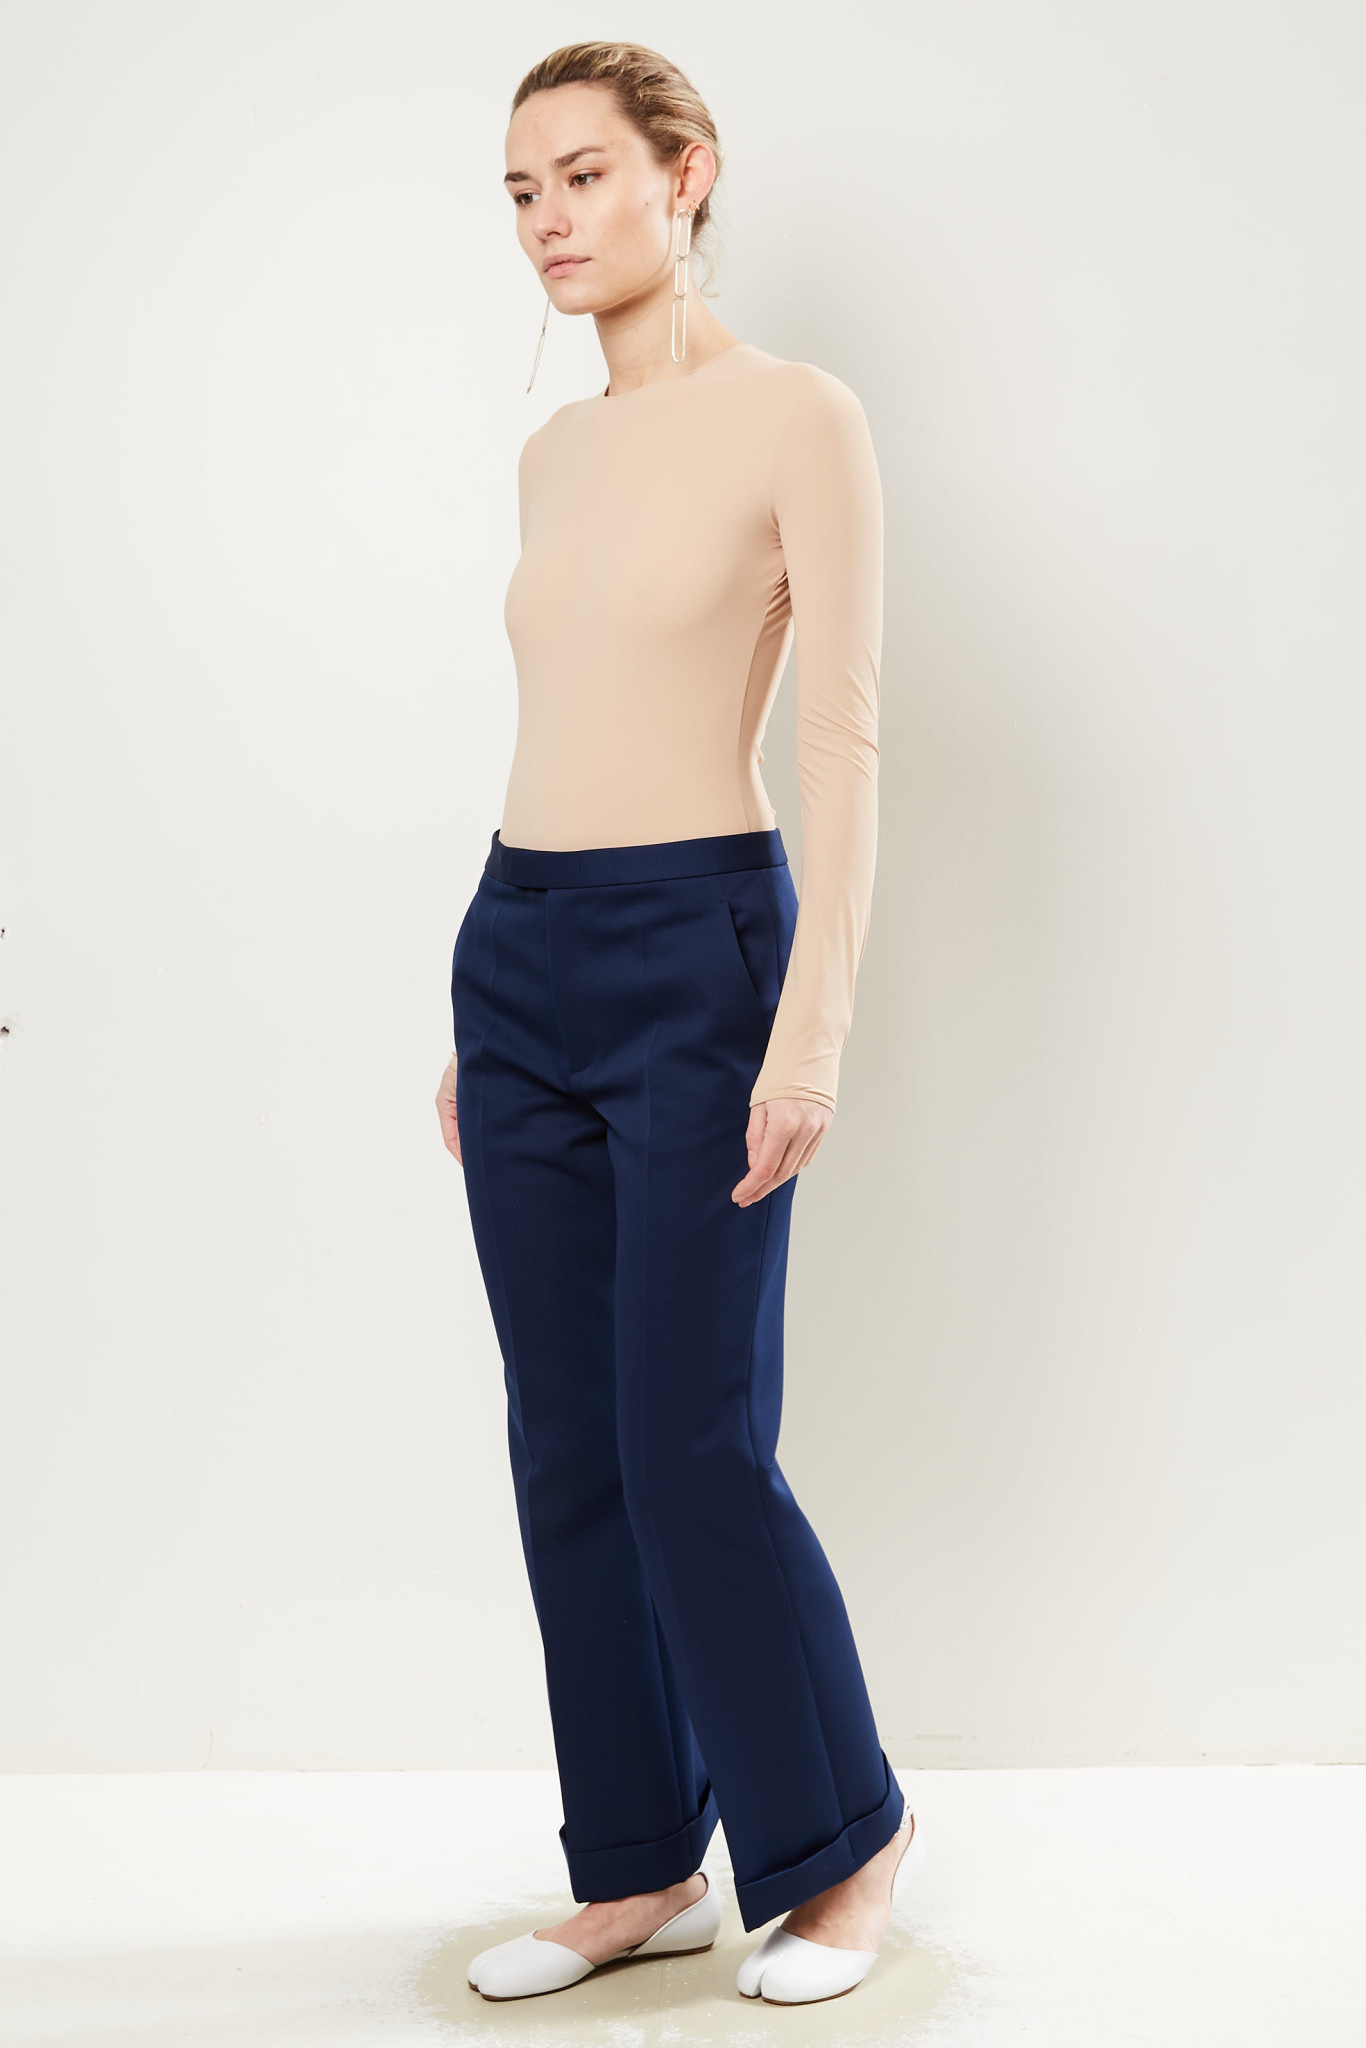 Maison Margiela - Cropped tailored trousers.